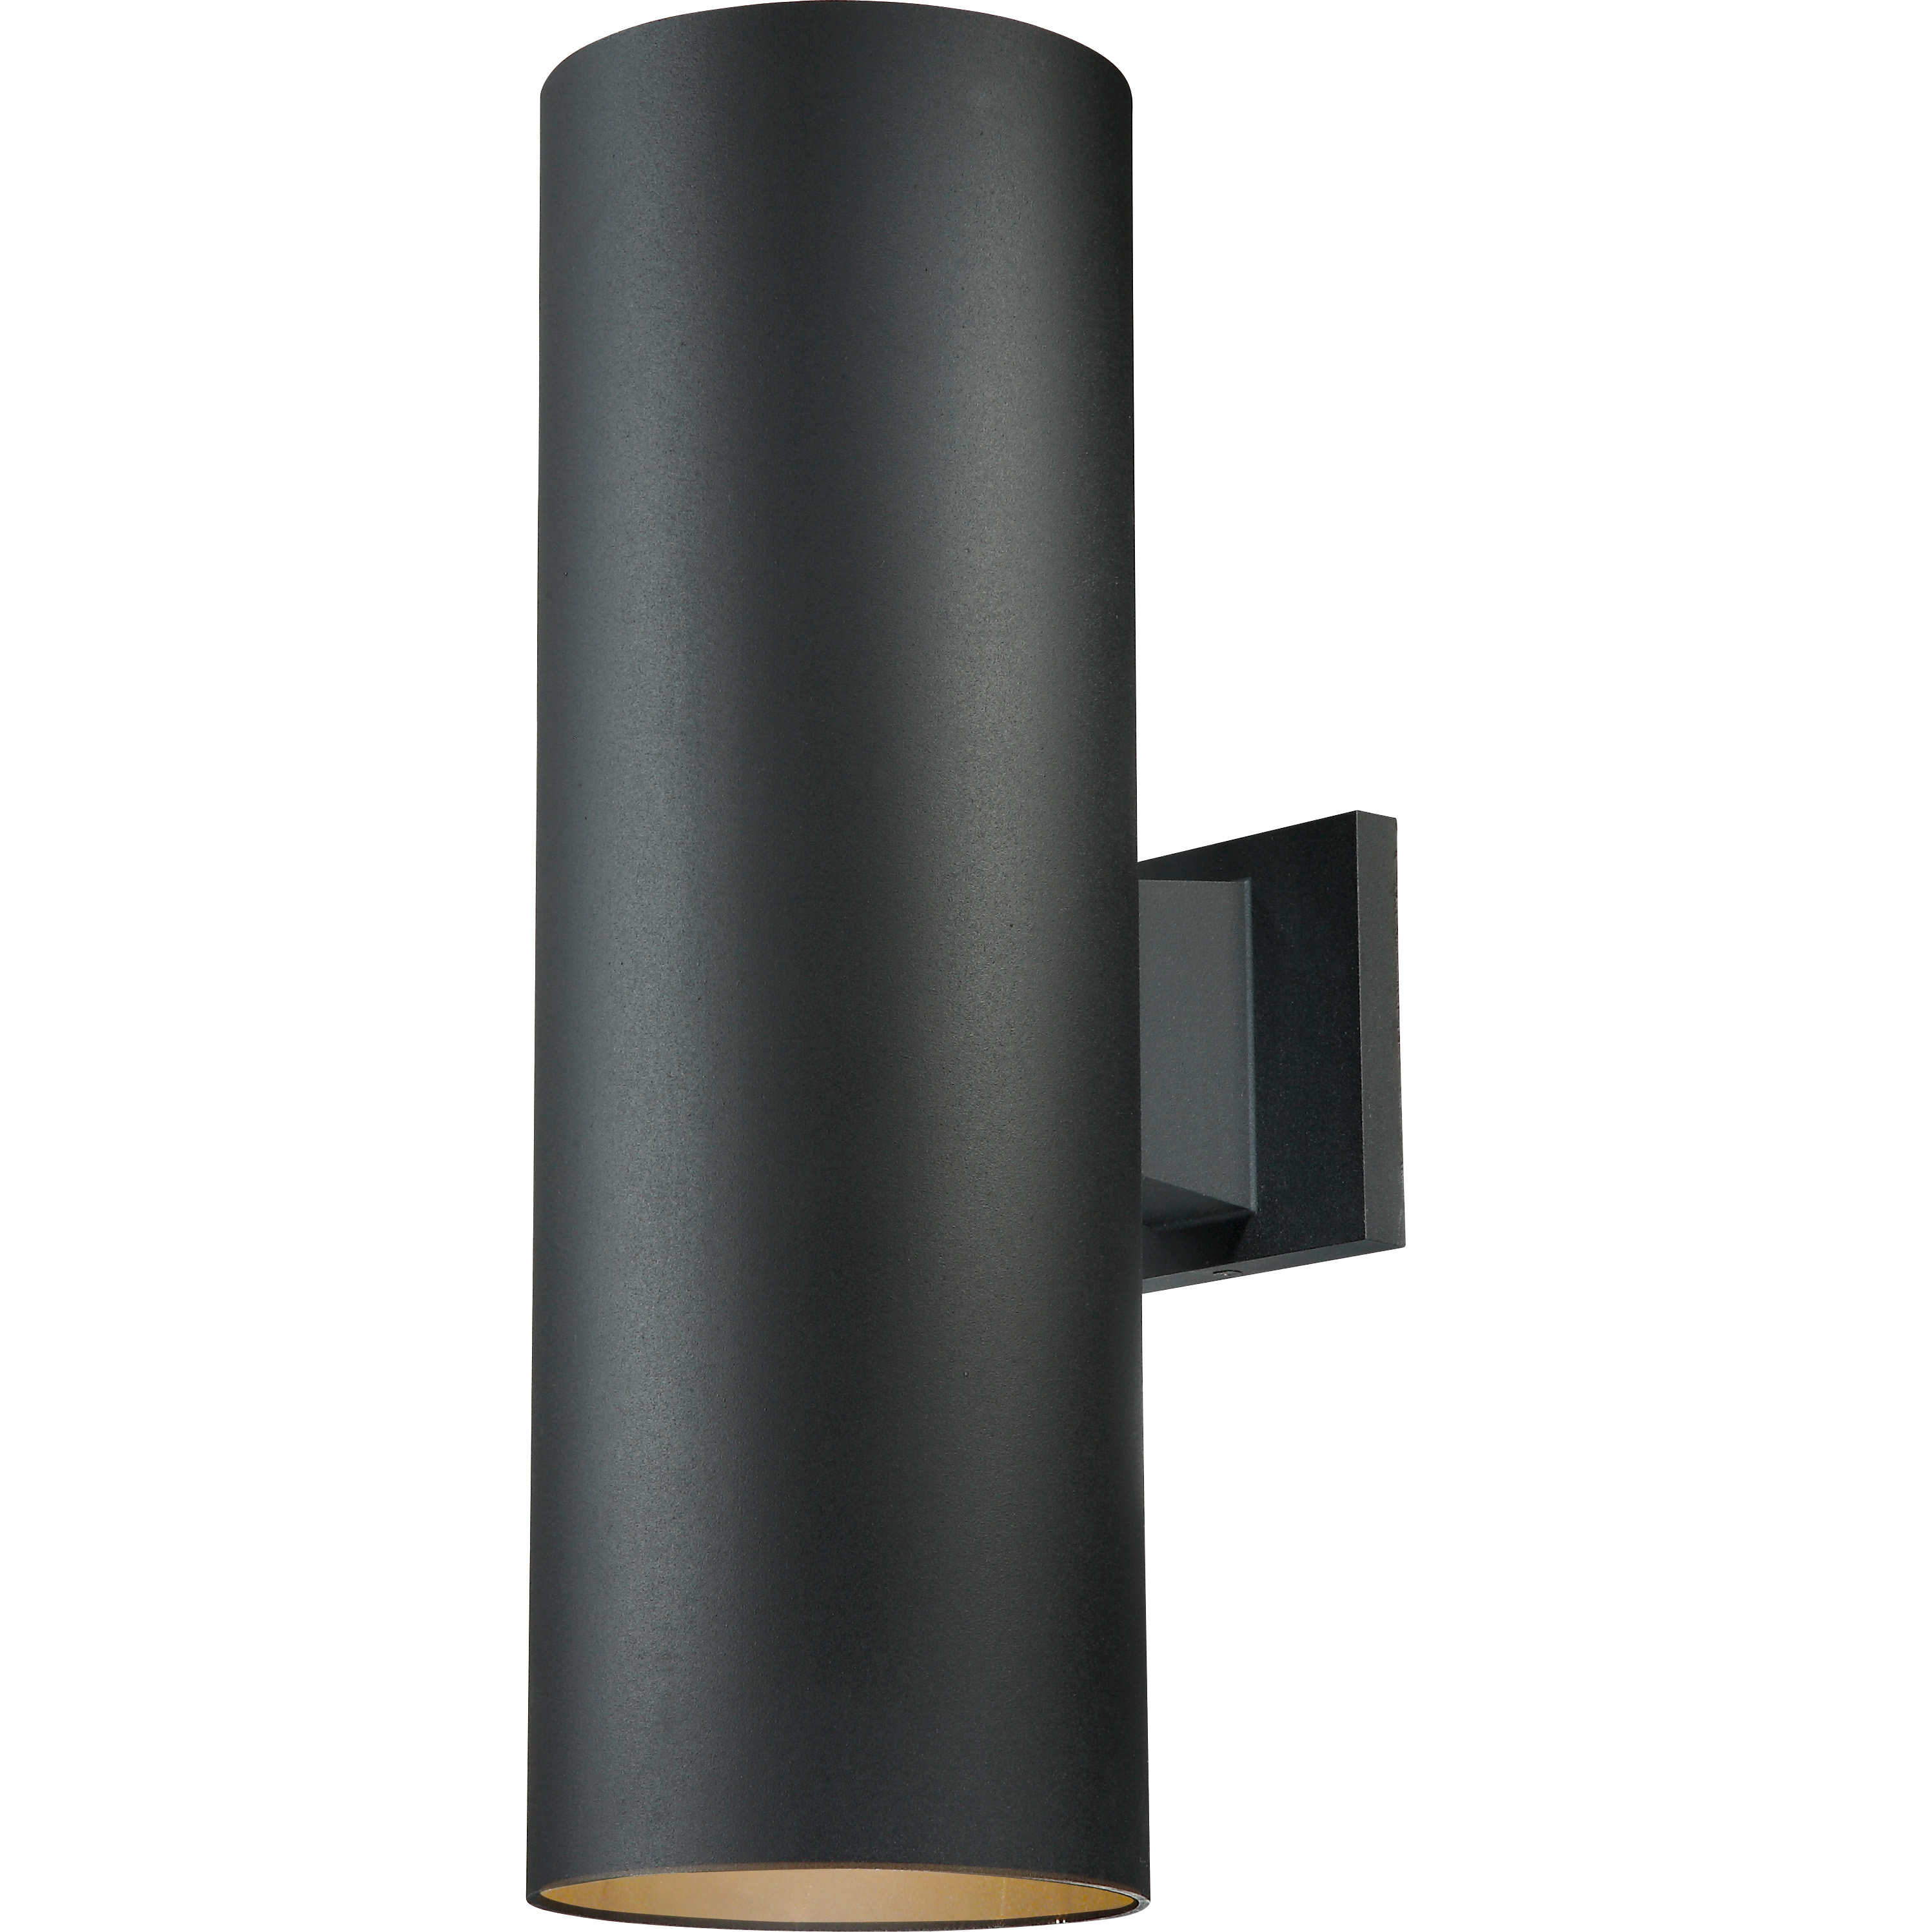 Cl604 Led Wall Mount Cylinder 6 Quot D X 18 Quot L Black White